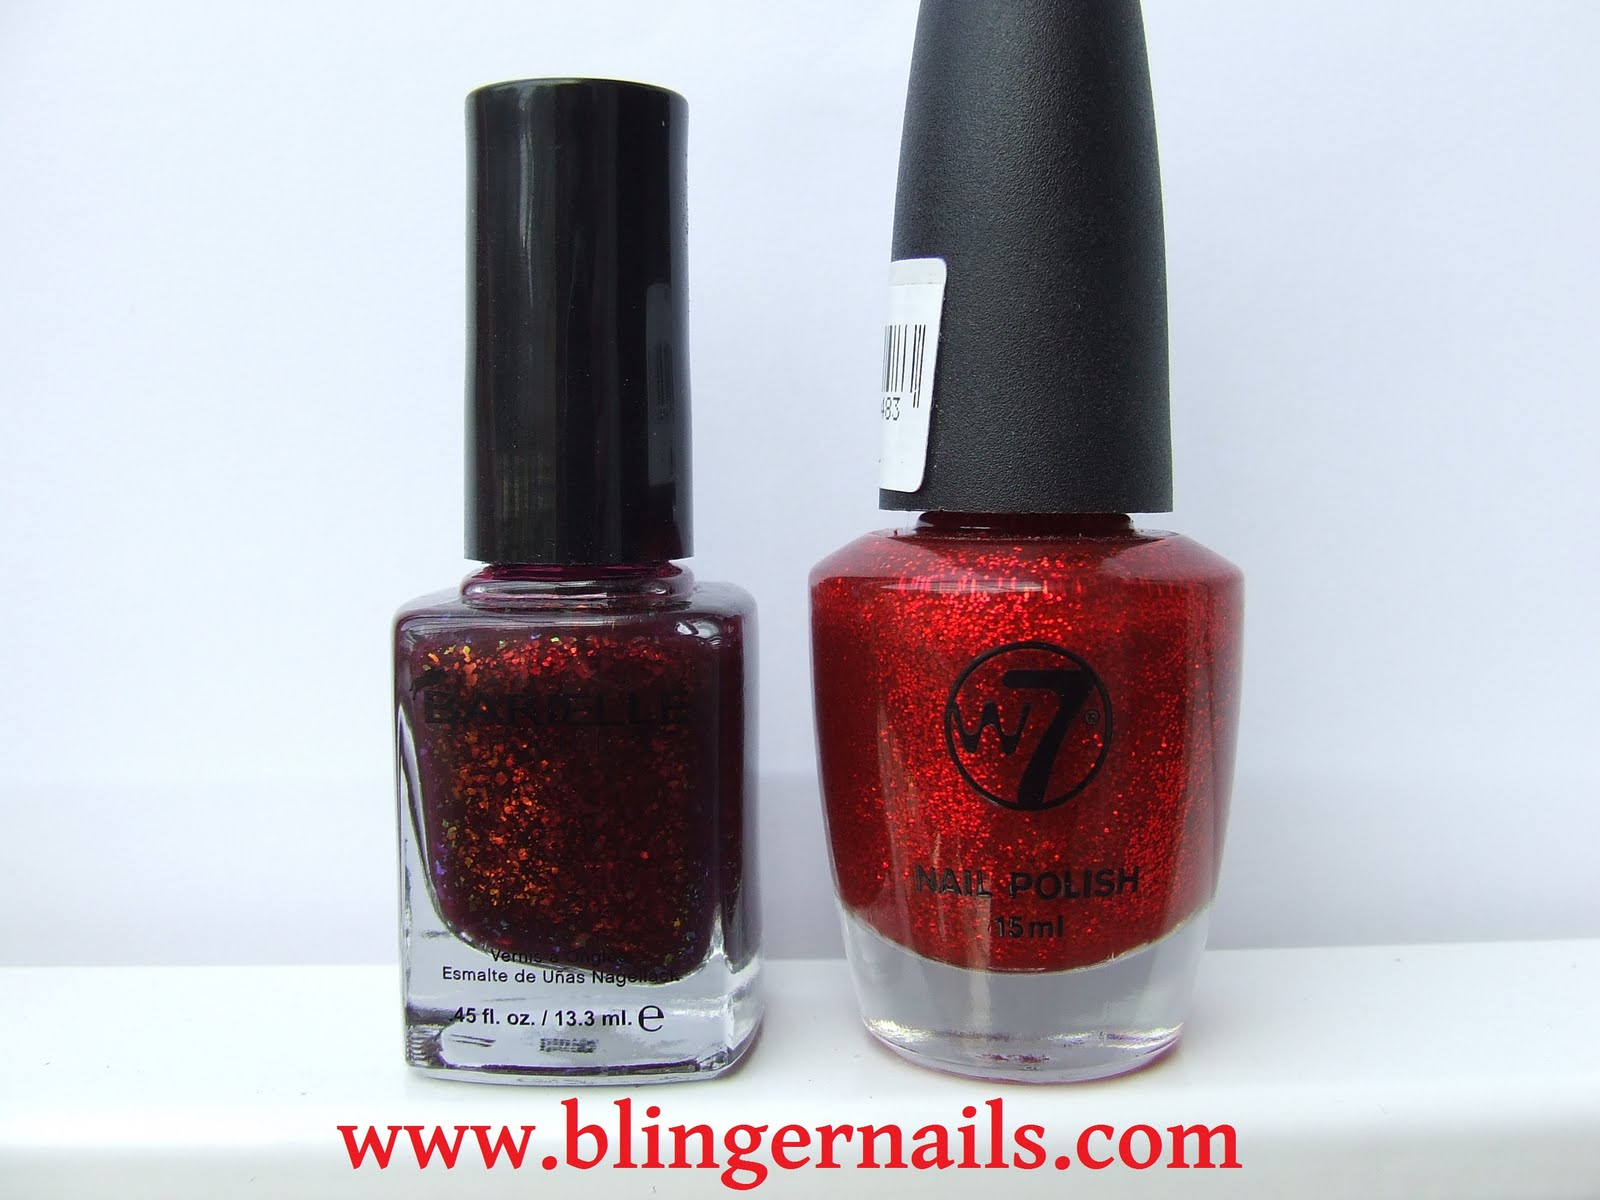 Blingernails: Barielle Elles Spell, W7 Layering and Fiery Flame Nail Art